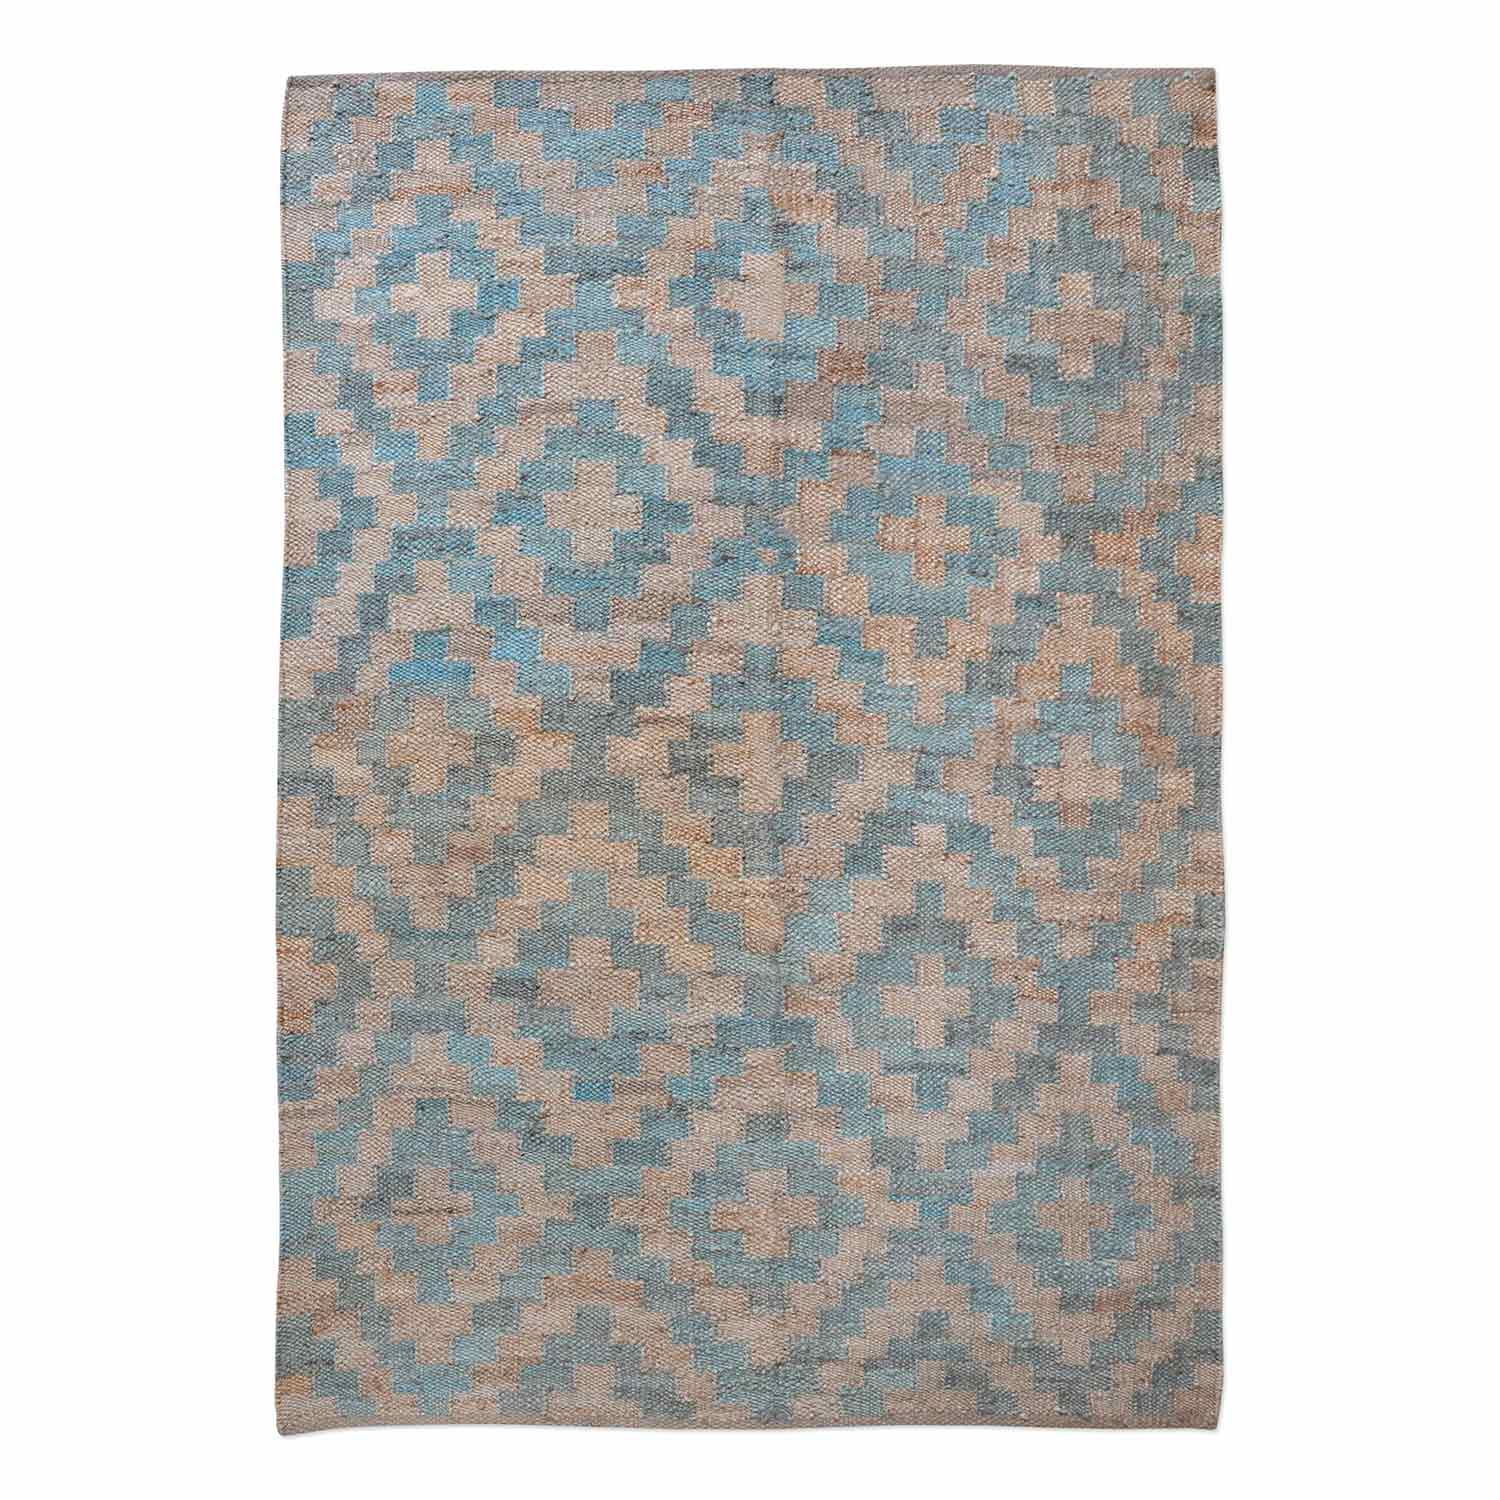 Uttermost Falco 5 x 8 Rug - Teal